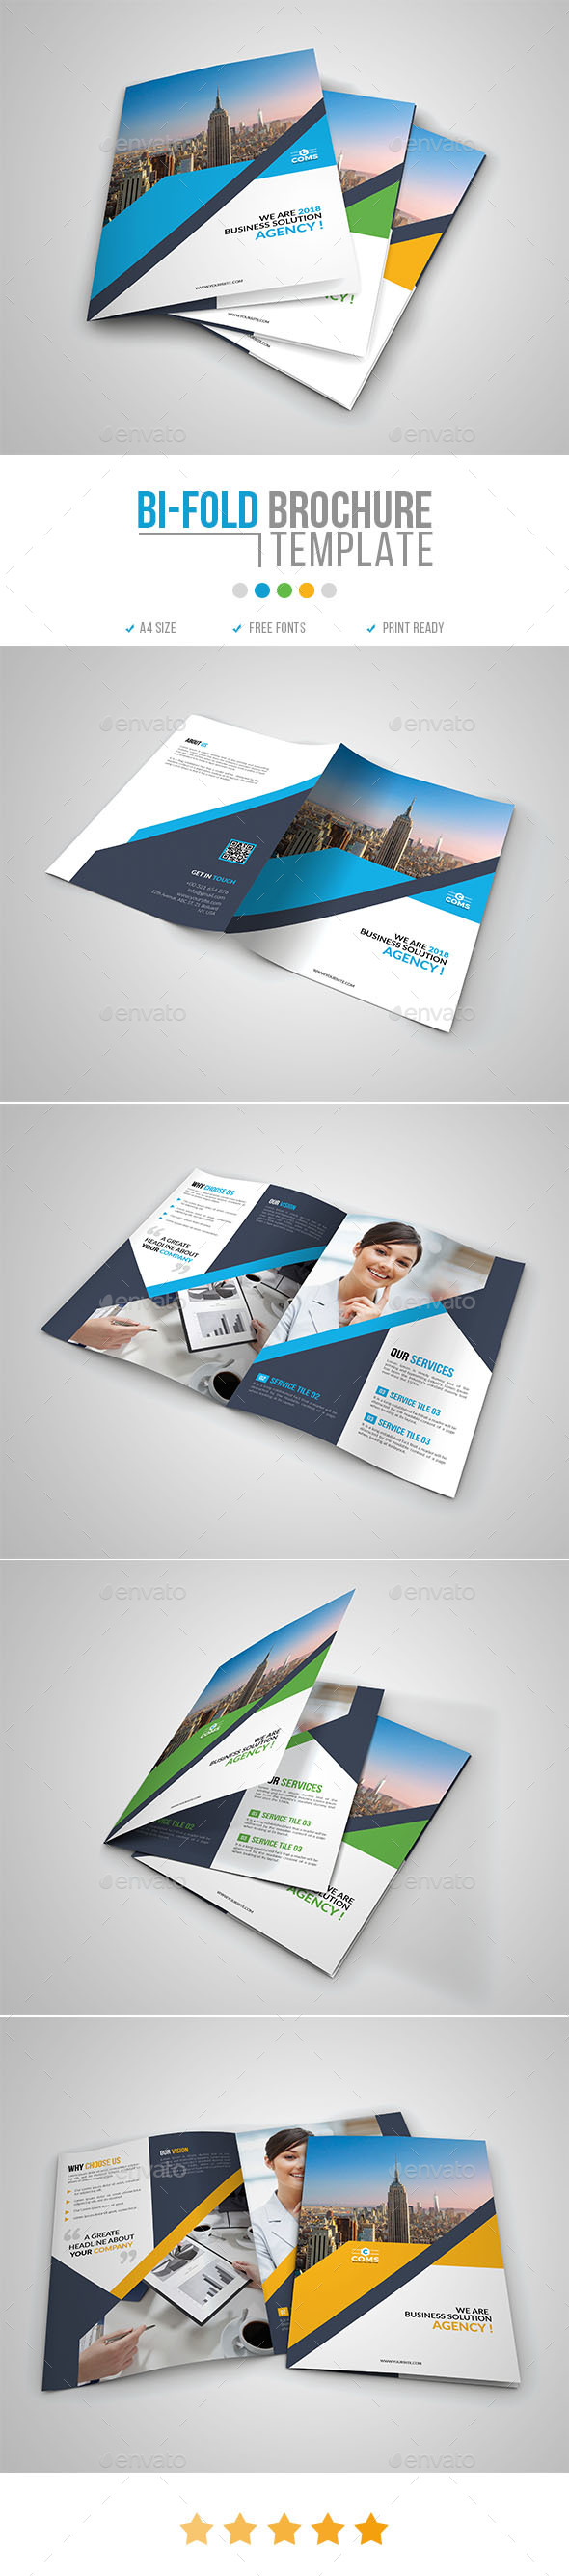 GraphicRiver Corporate Bi-Fold Brochure Template 11 20990146